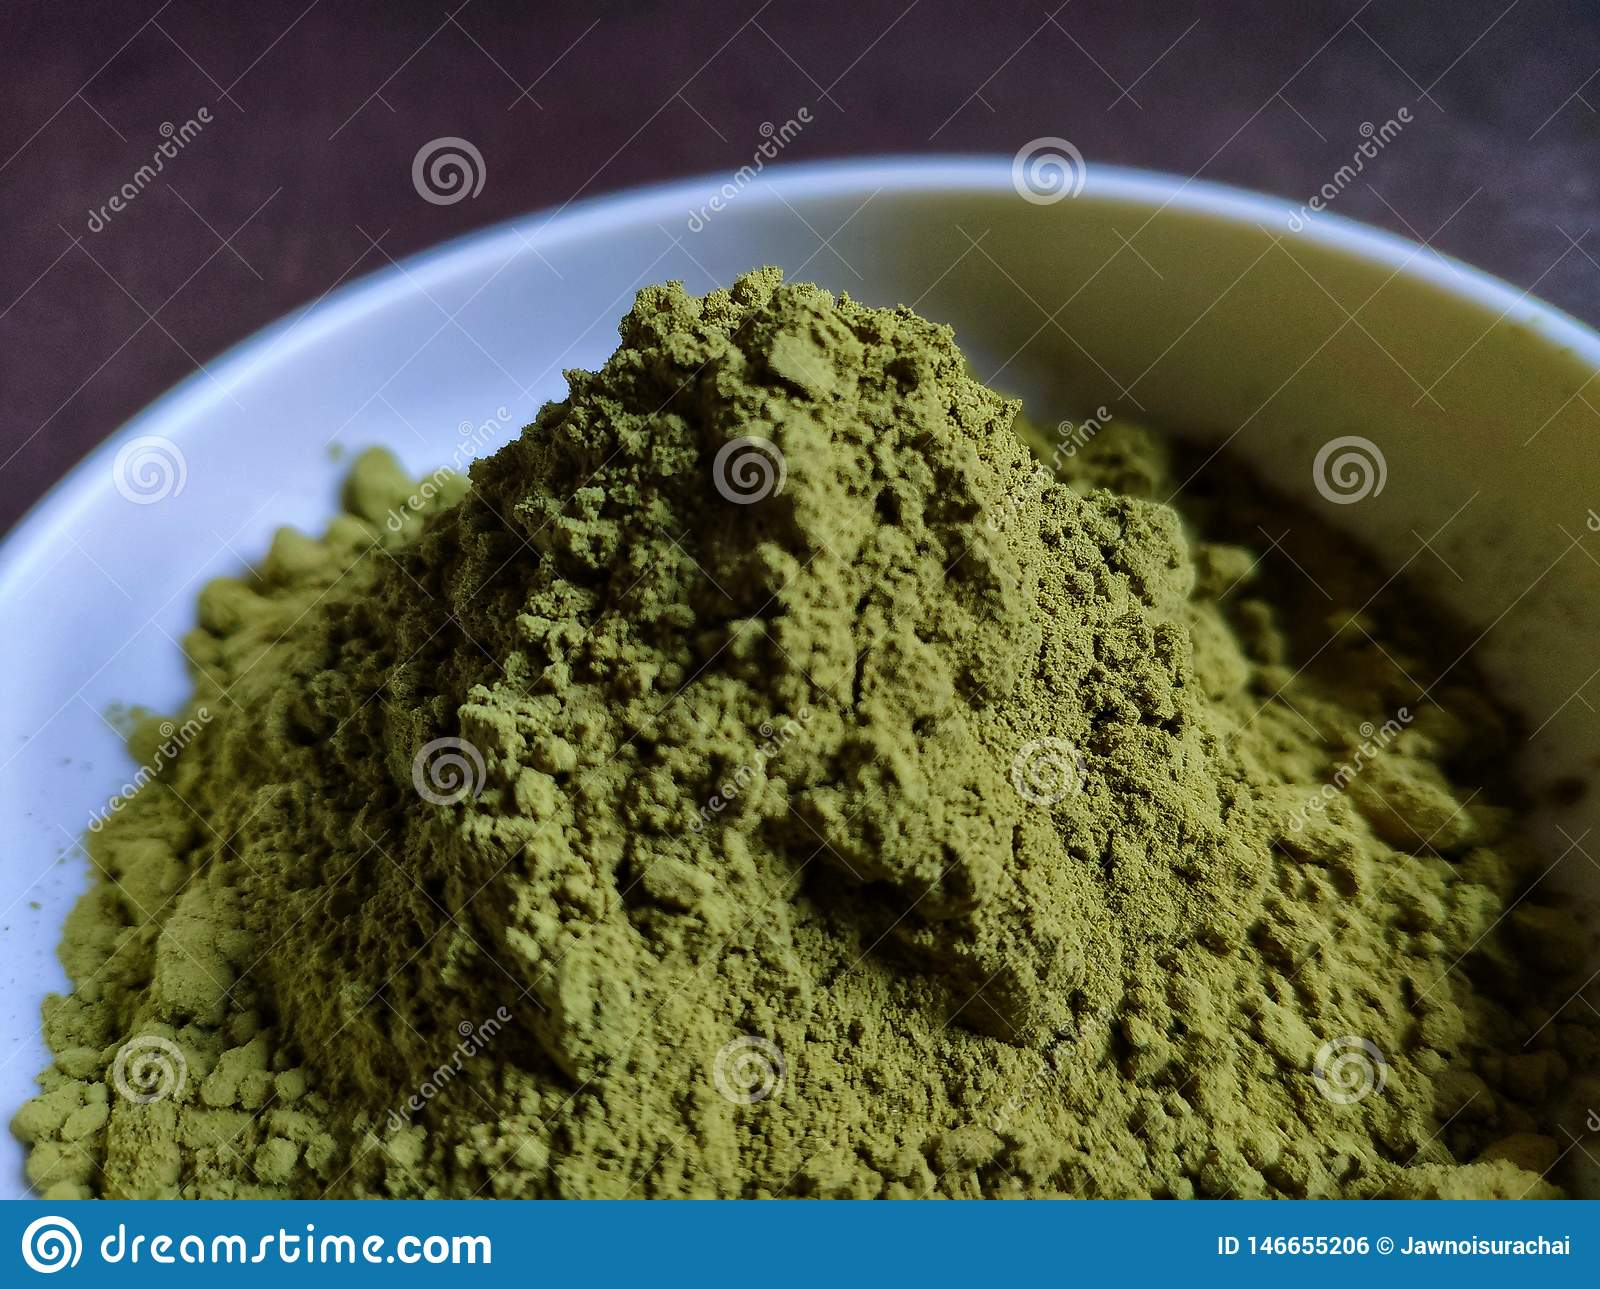 Green tea powder in the plate on the wooden table.